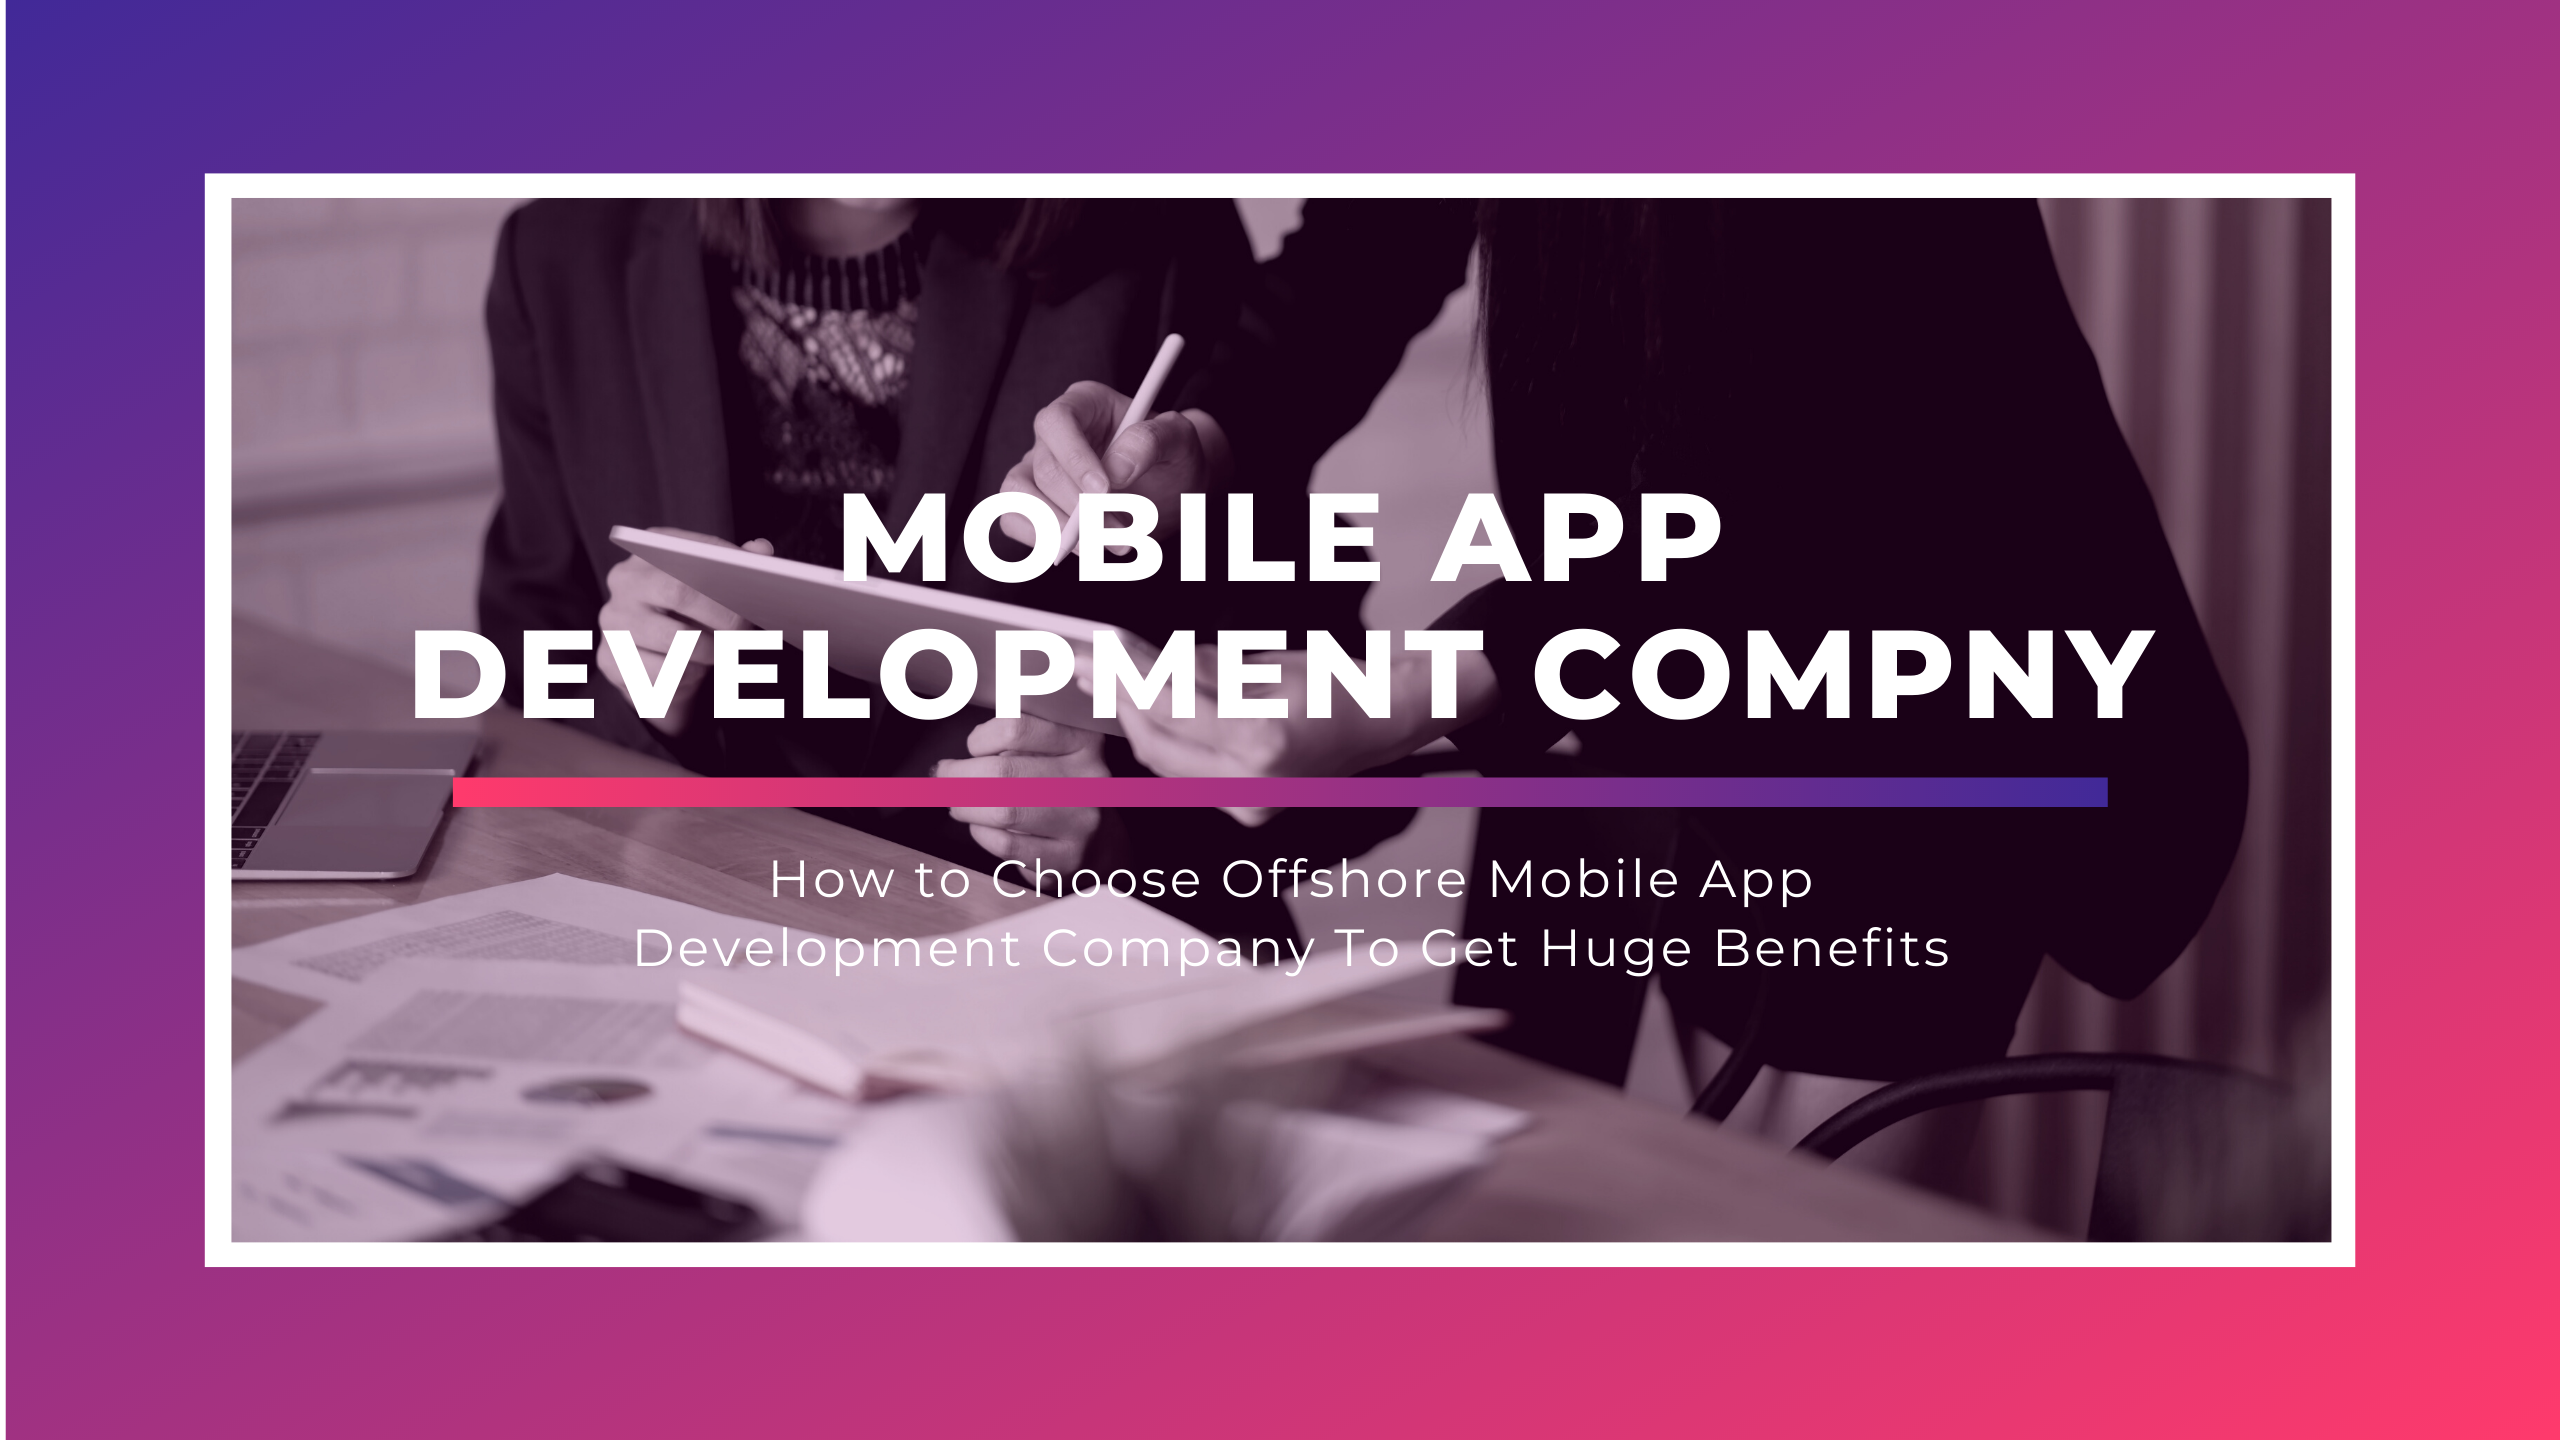 How to Choose Offshore Mobile App Development Company